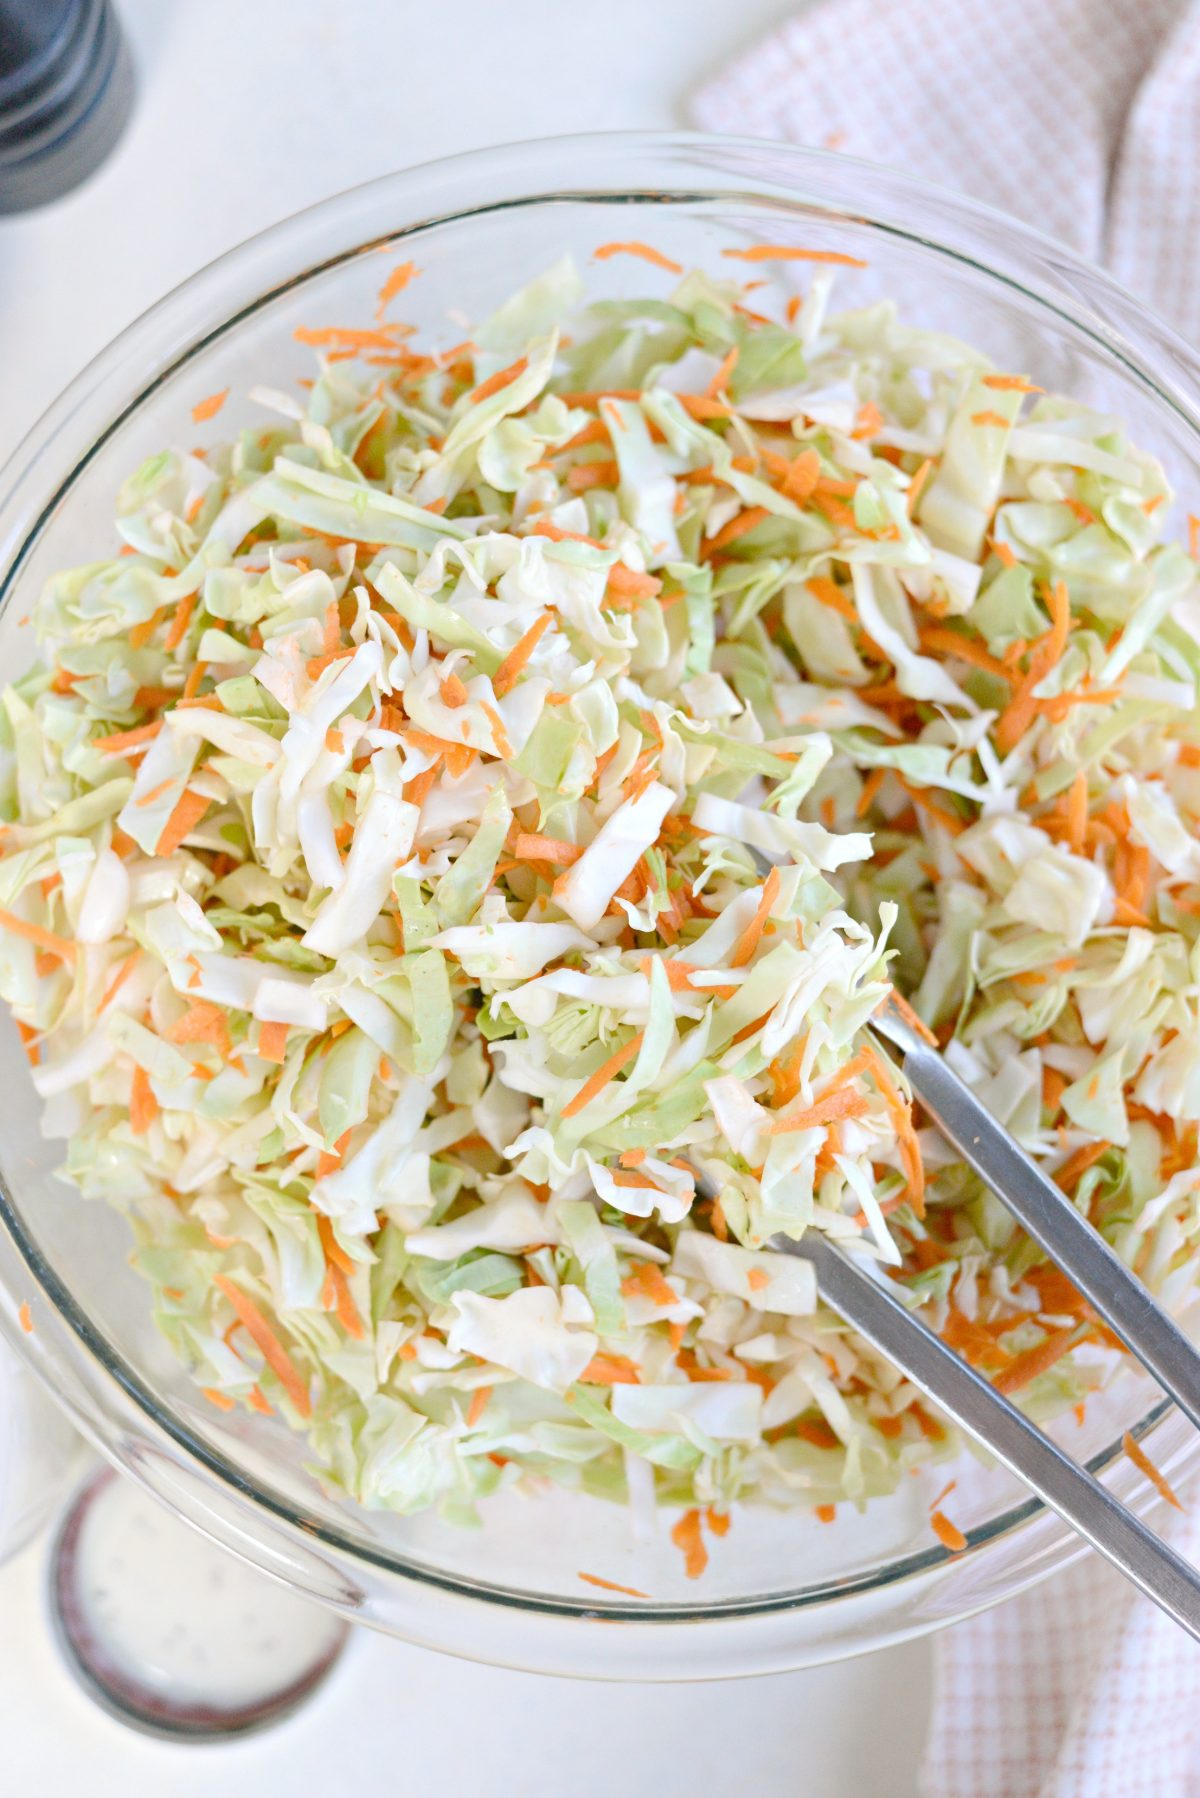 Classic Coleslaw Recipe with Homemade Dressing l SimplyScratch.com (8)